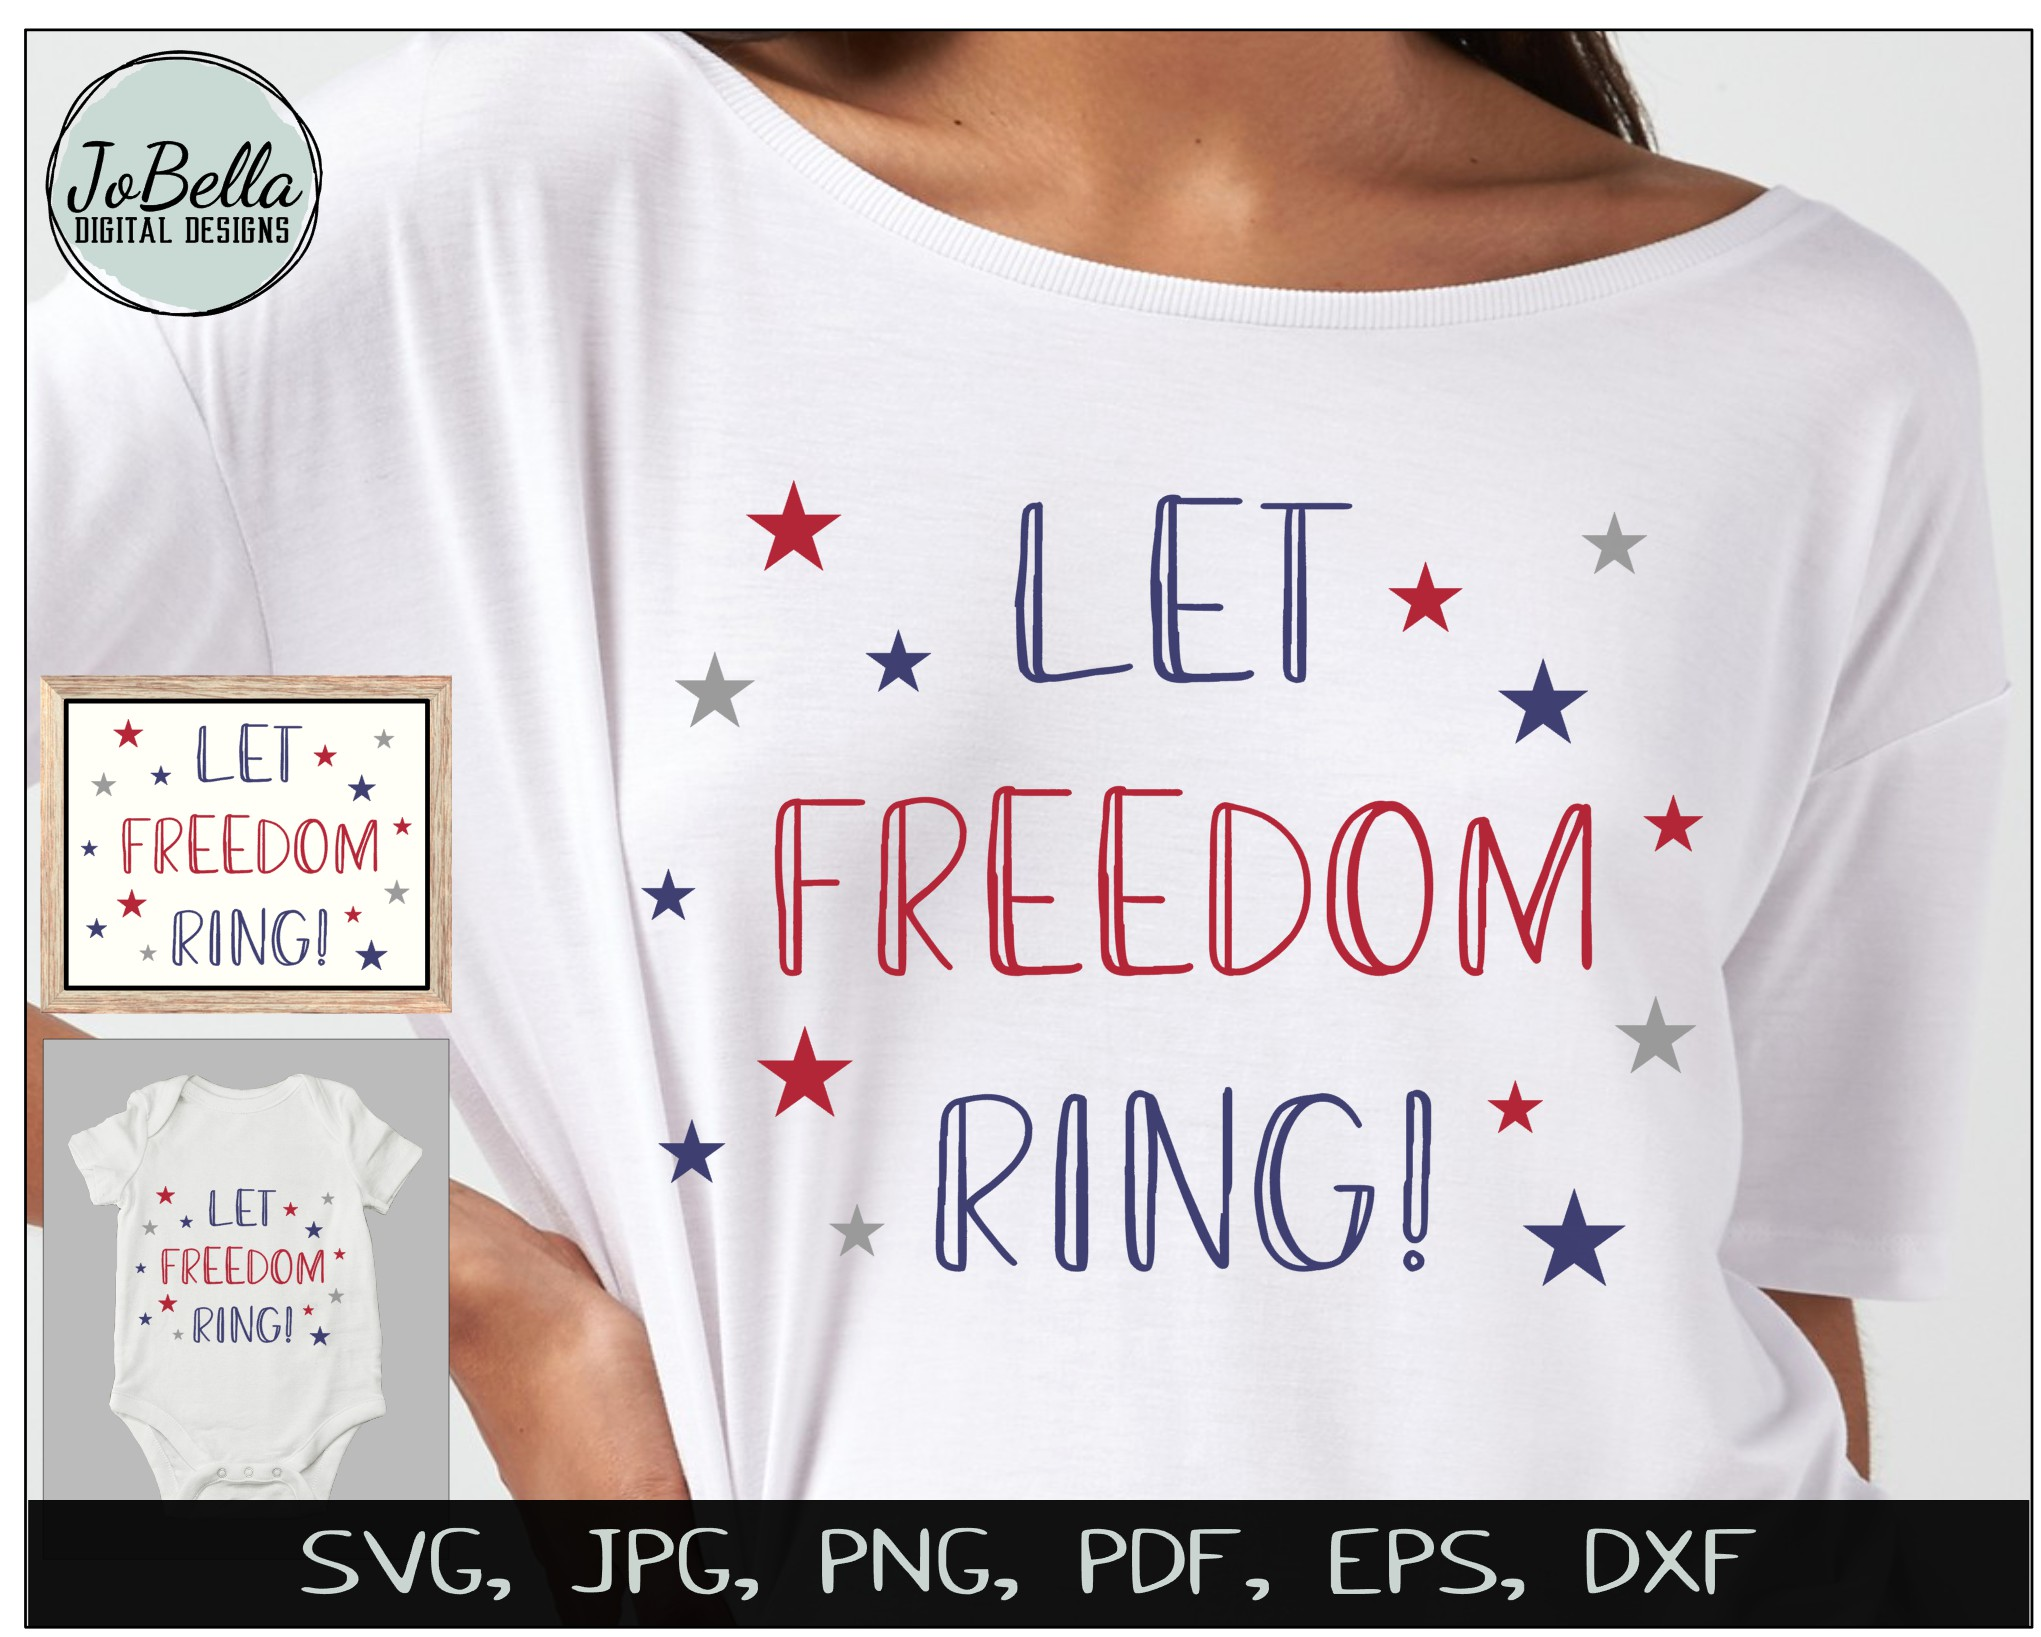 Patriotic SVG Bundle- July 4th Sublimation PNGs & Printables example image 7